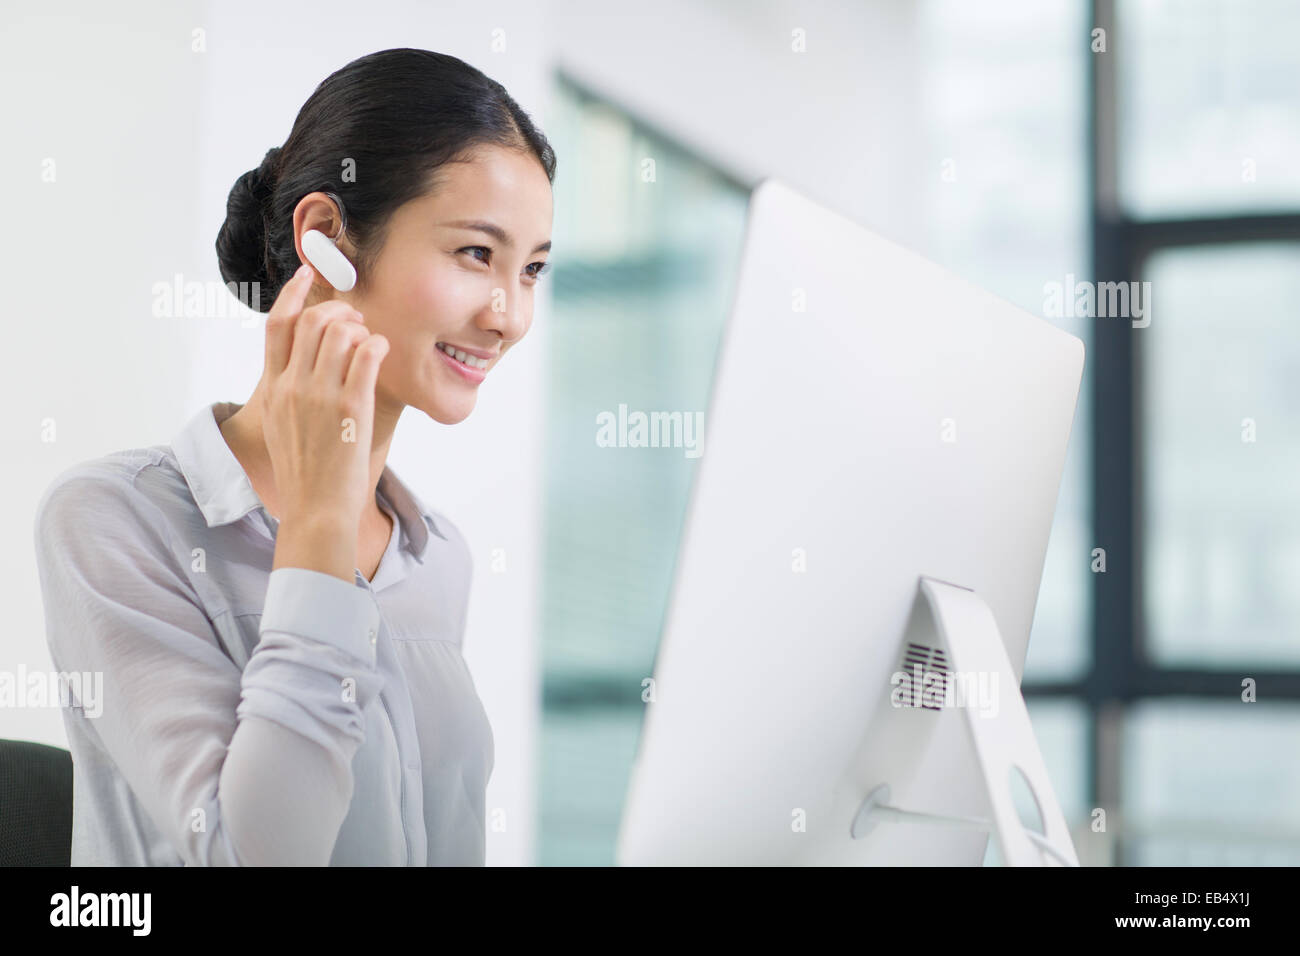 Young Businesswoman With Bluetooth Headset Working In Office Stock Photo Alamy